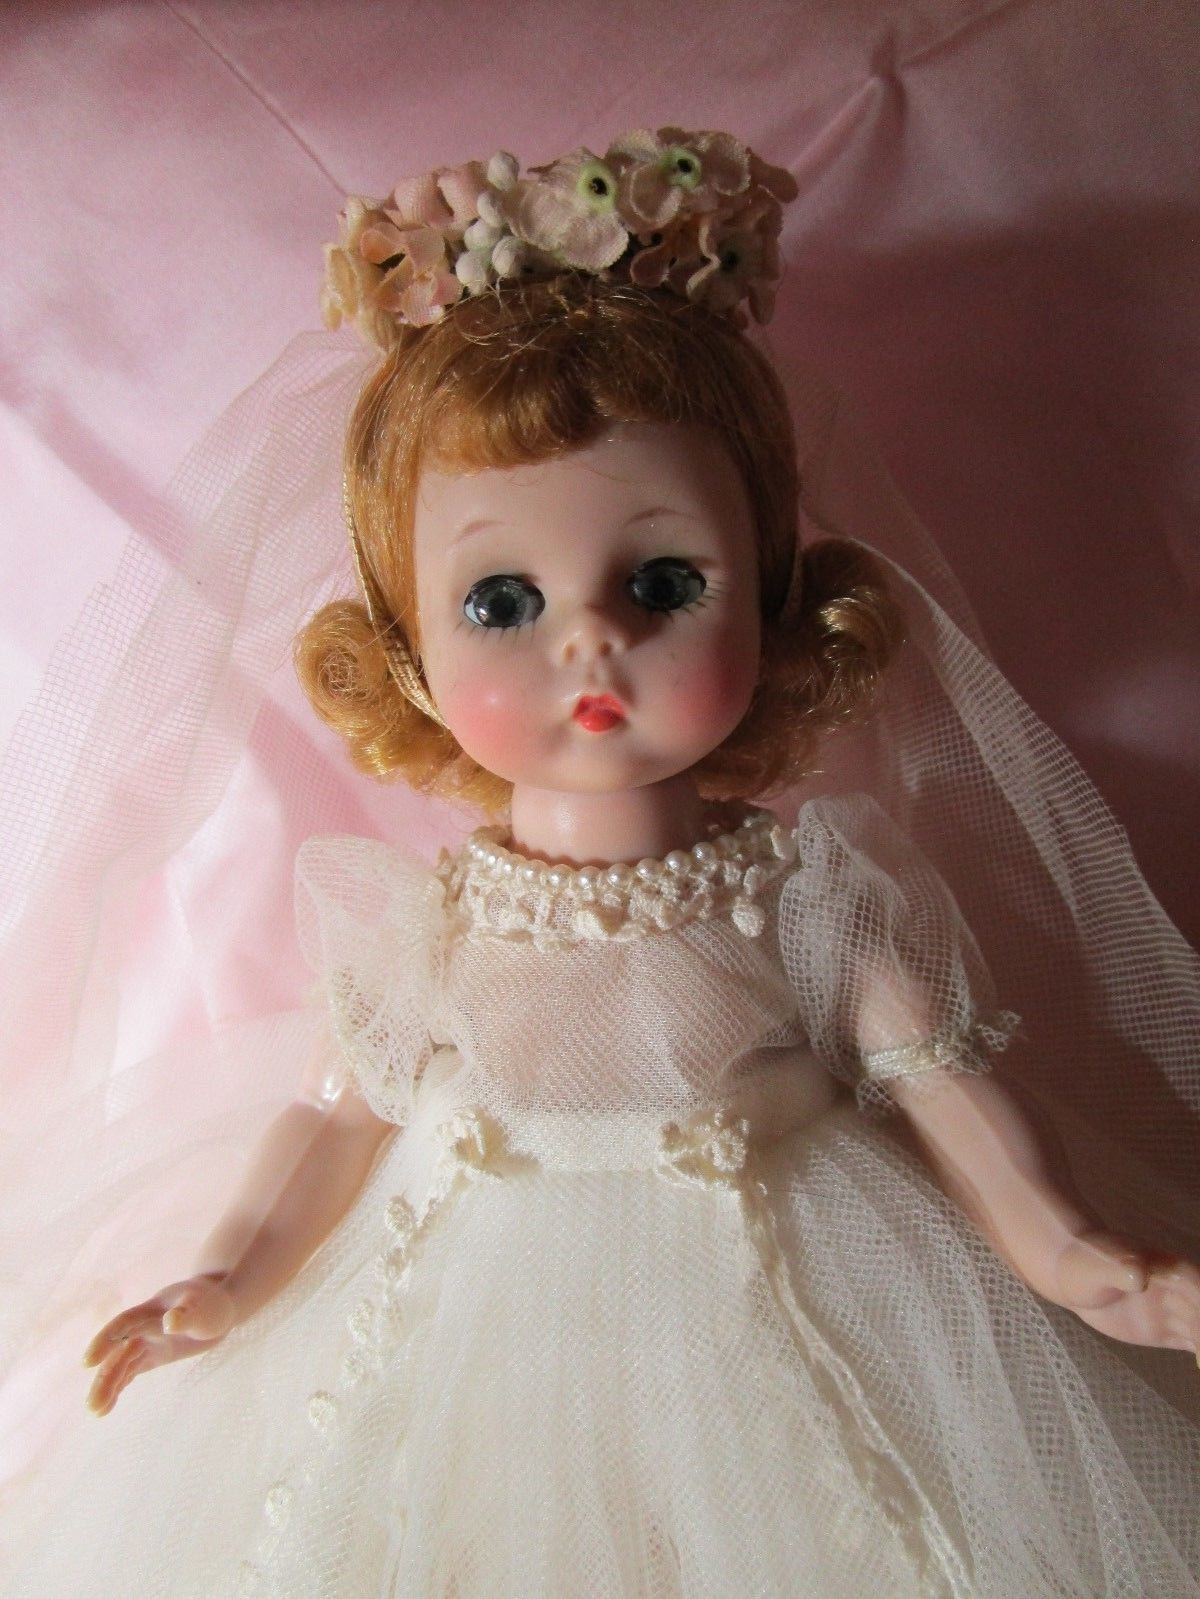 Alexander-Kin Bride BKW blonde ***GORGEOUS DOLL*** WREATH STYLE*** in Dolls & Bears, Dolls, By Brand, Company, Character, Madame Alexander, Vintage (Pre-1973), 1948-59 | eBay